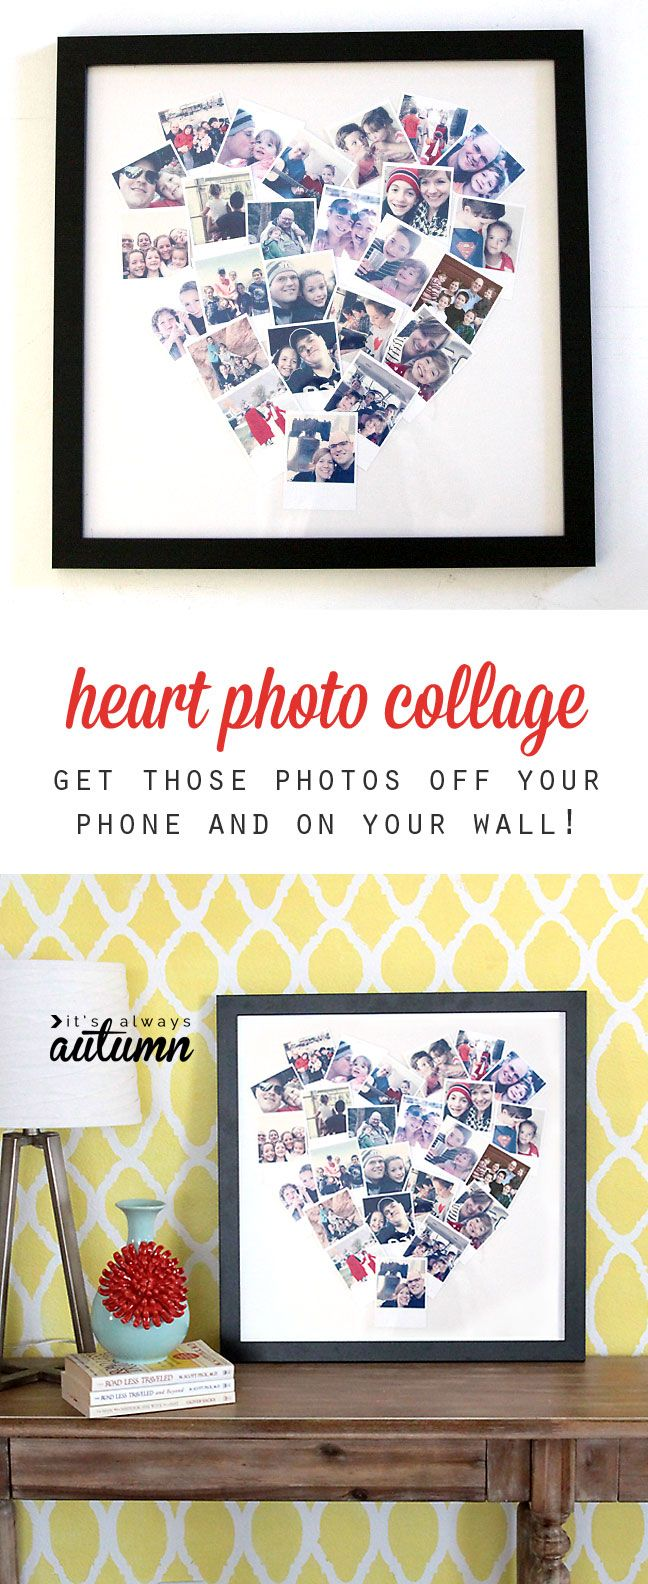 6fee20cedab1 get your photos off your phone and on you wall with this cute DIY heart  photo collage. great handmade gift idea!